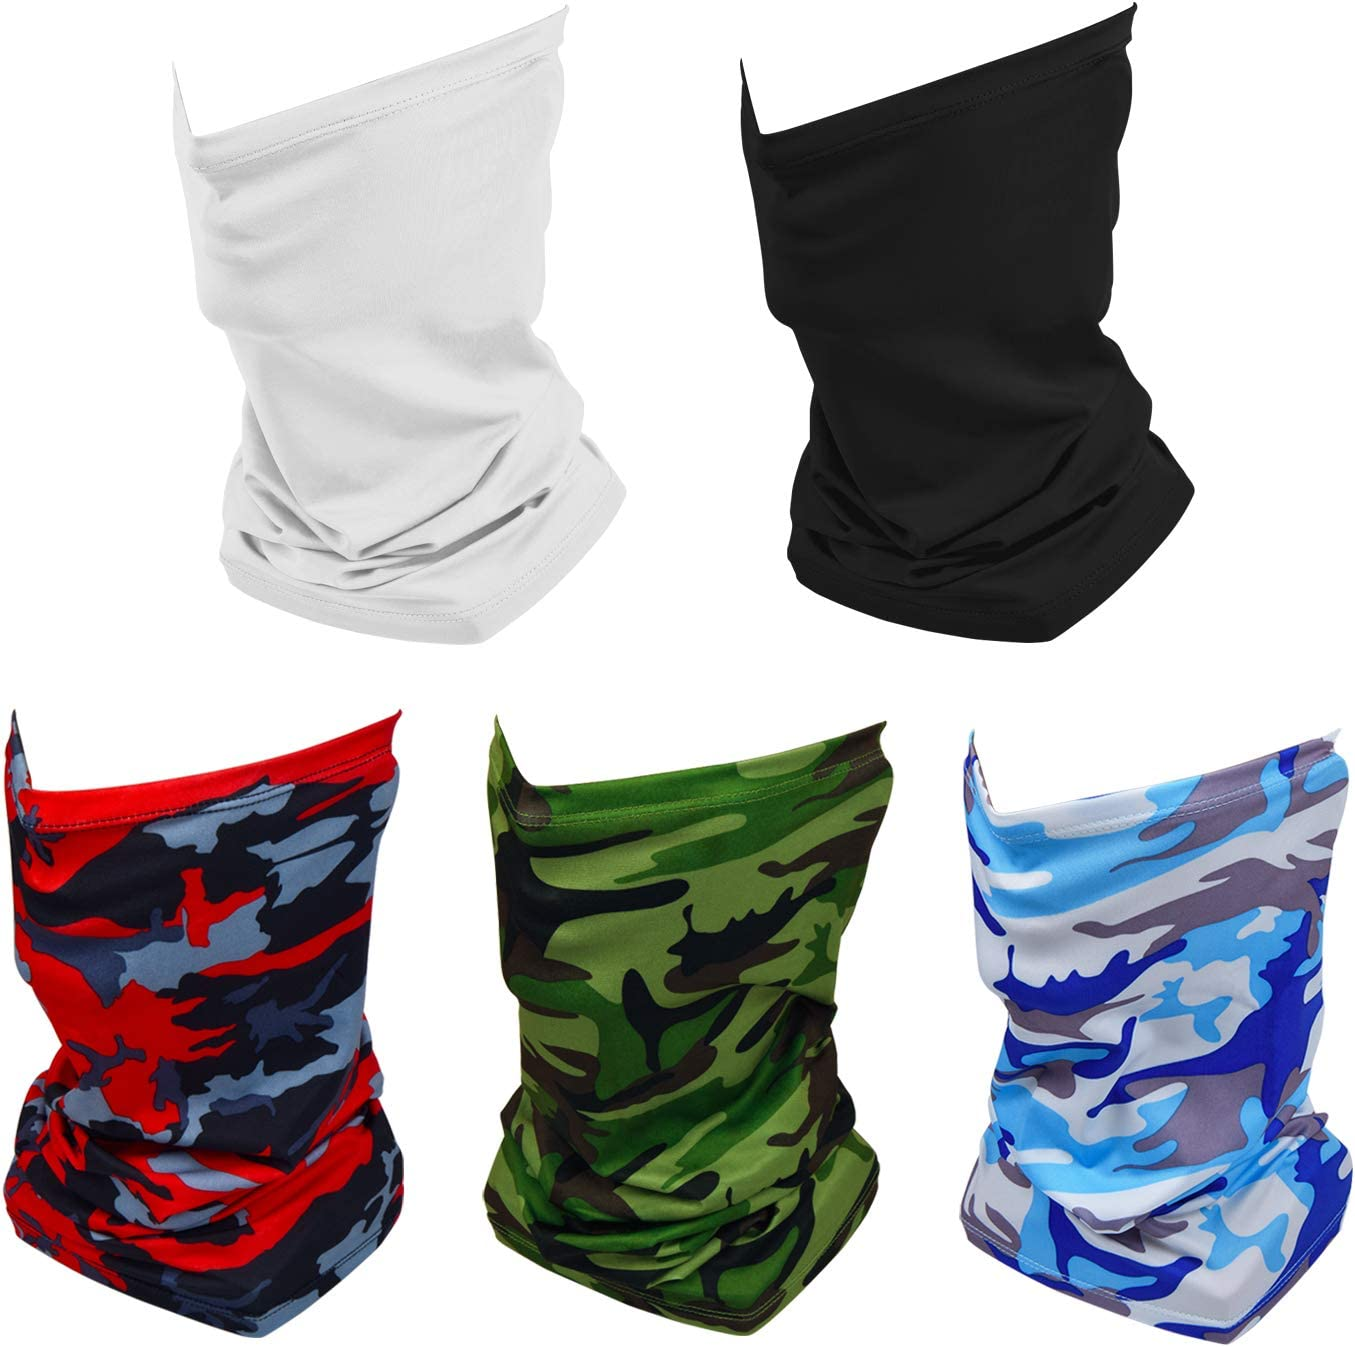 Retail Sign Systems 5 Pack Summer Neck Bandana UV Sun Protection, Unisex Elastic Neck Gaiter Face Shield Mask Breathable Cooling Face Scarf Cover for Fishing Hunting